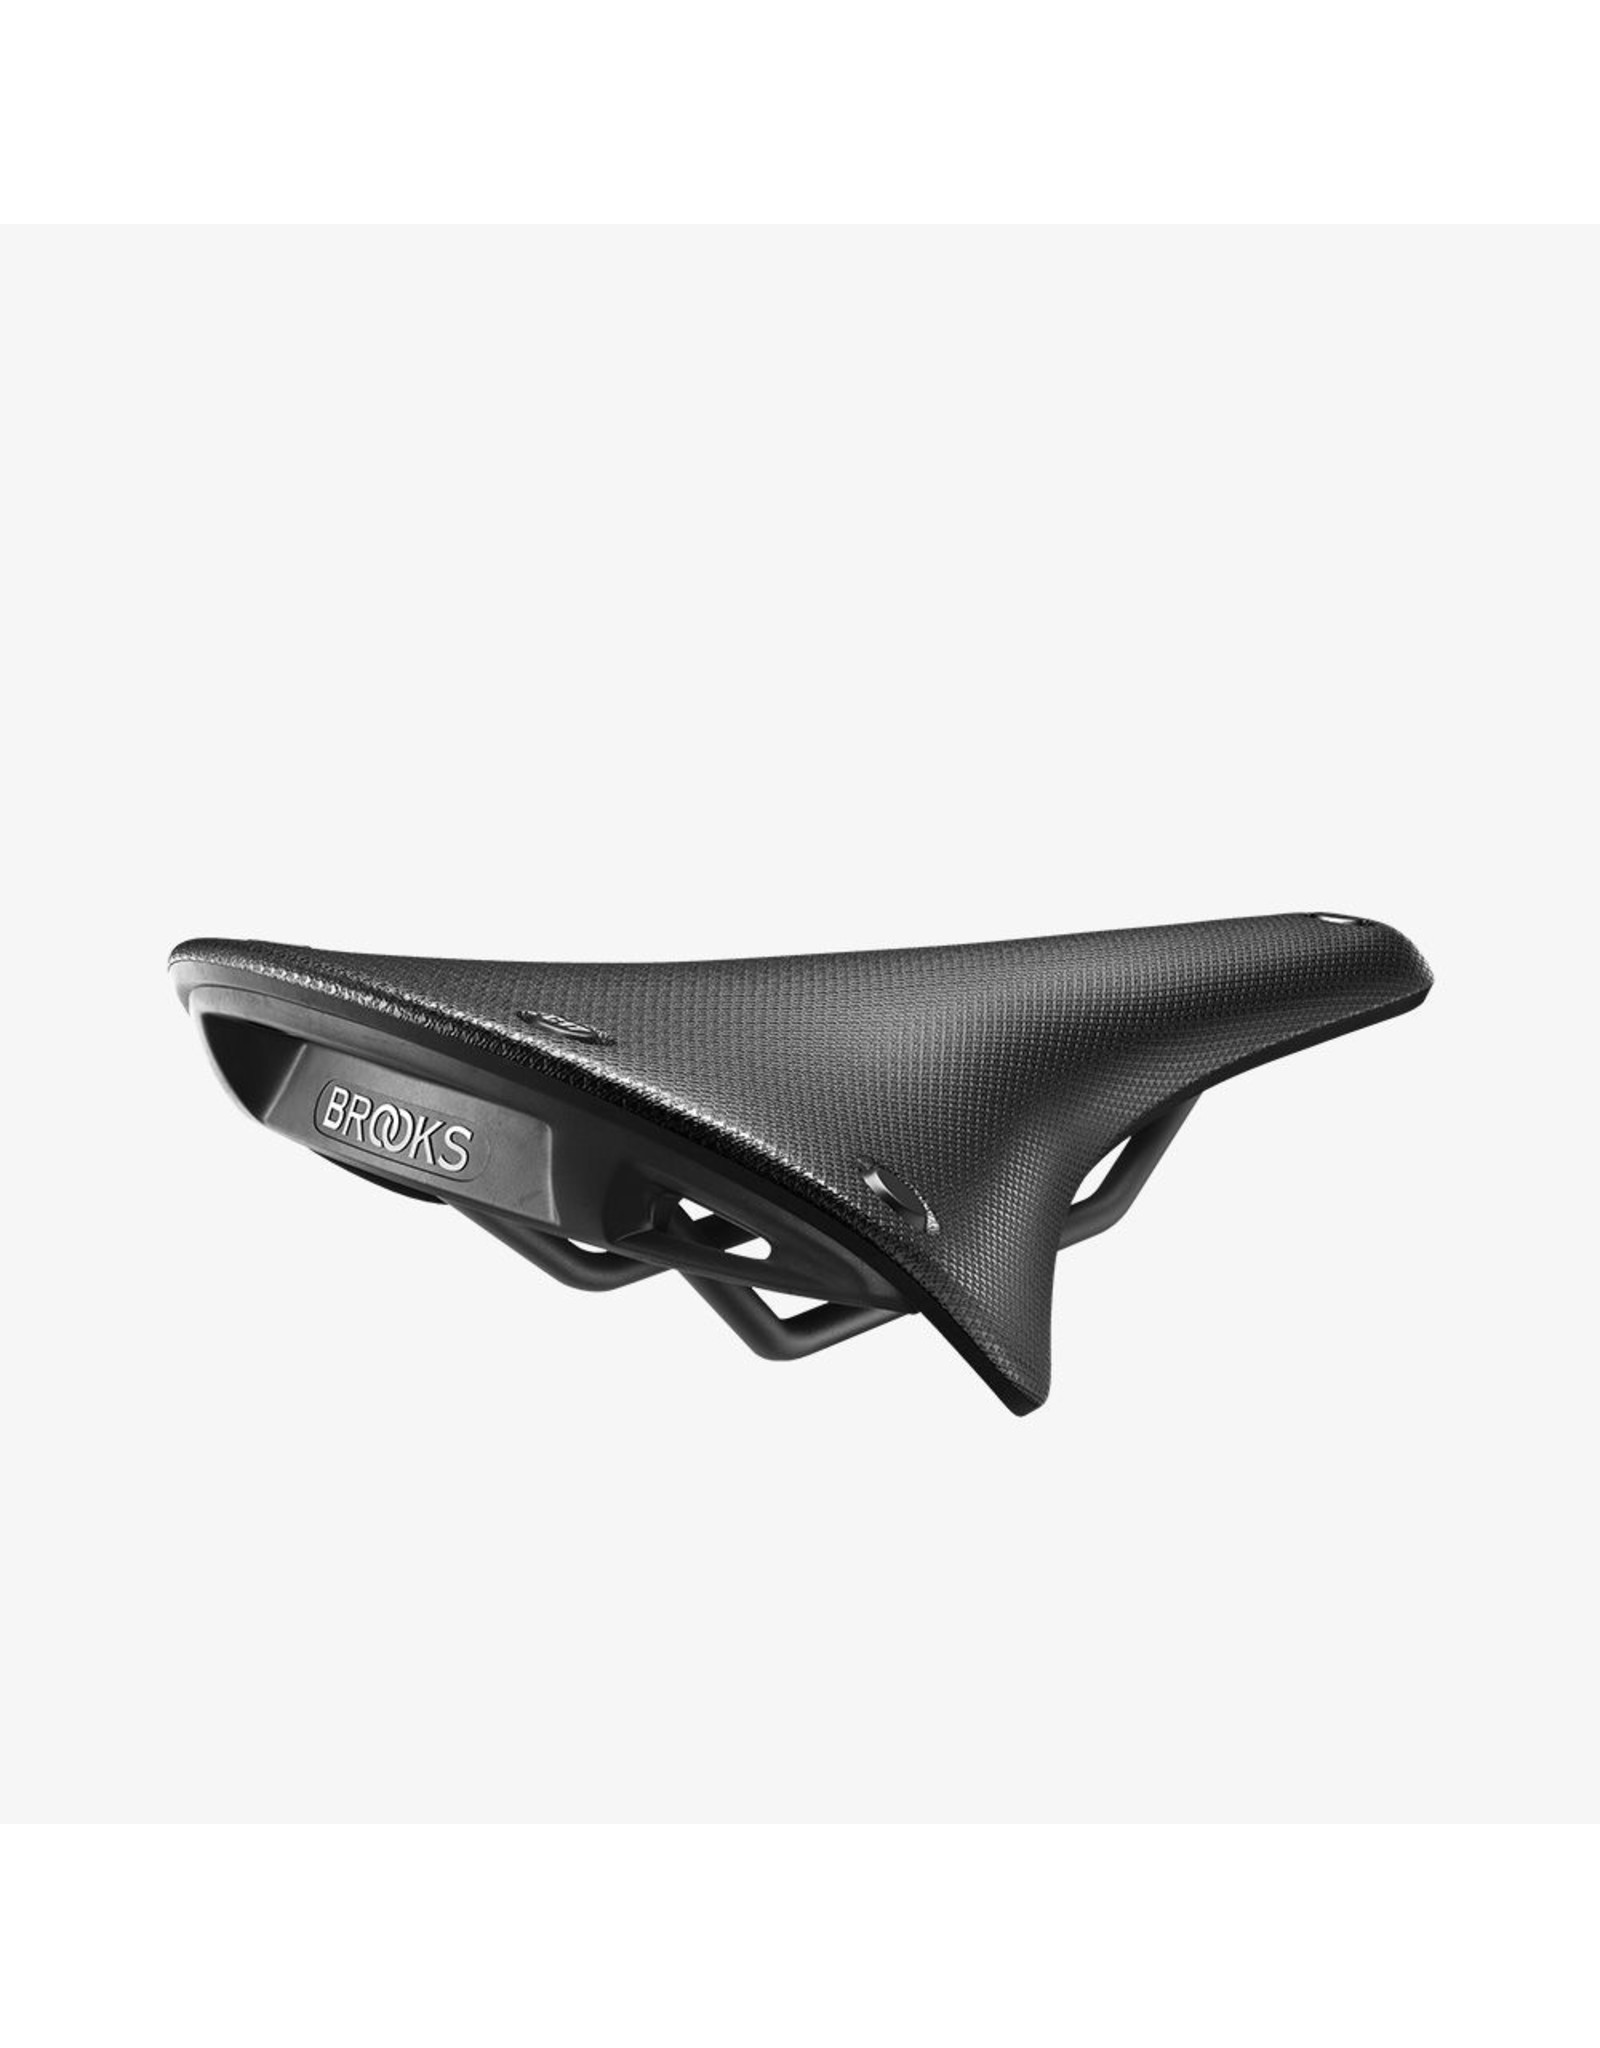 Brooks, C17 Cambium Carved, Saddle, 283 x 162mm, Men, 400g, Black